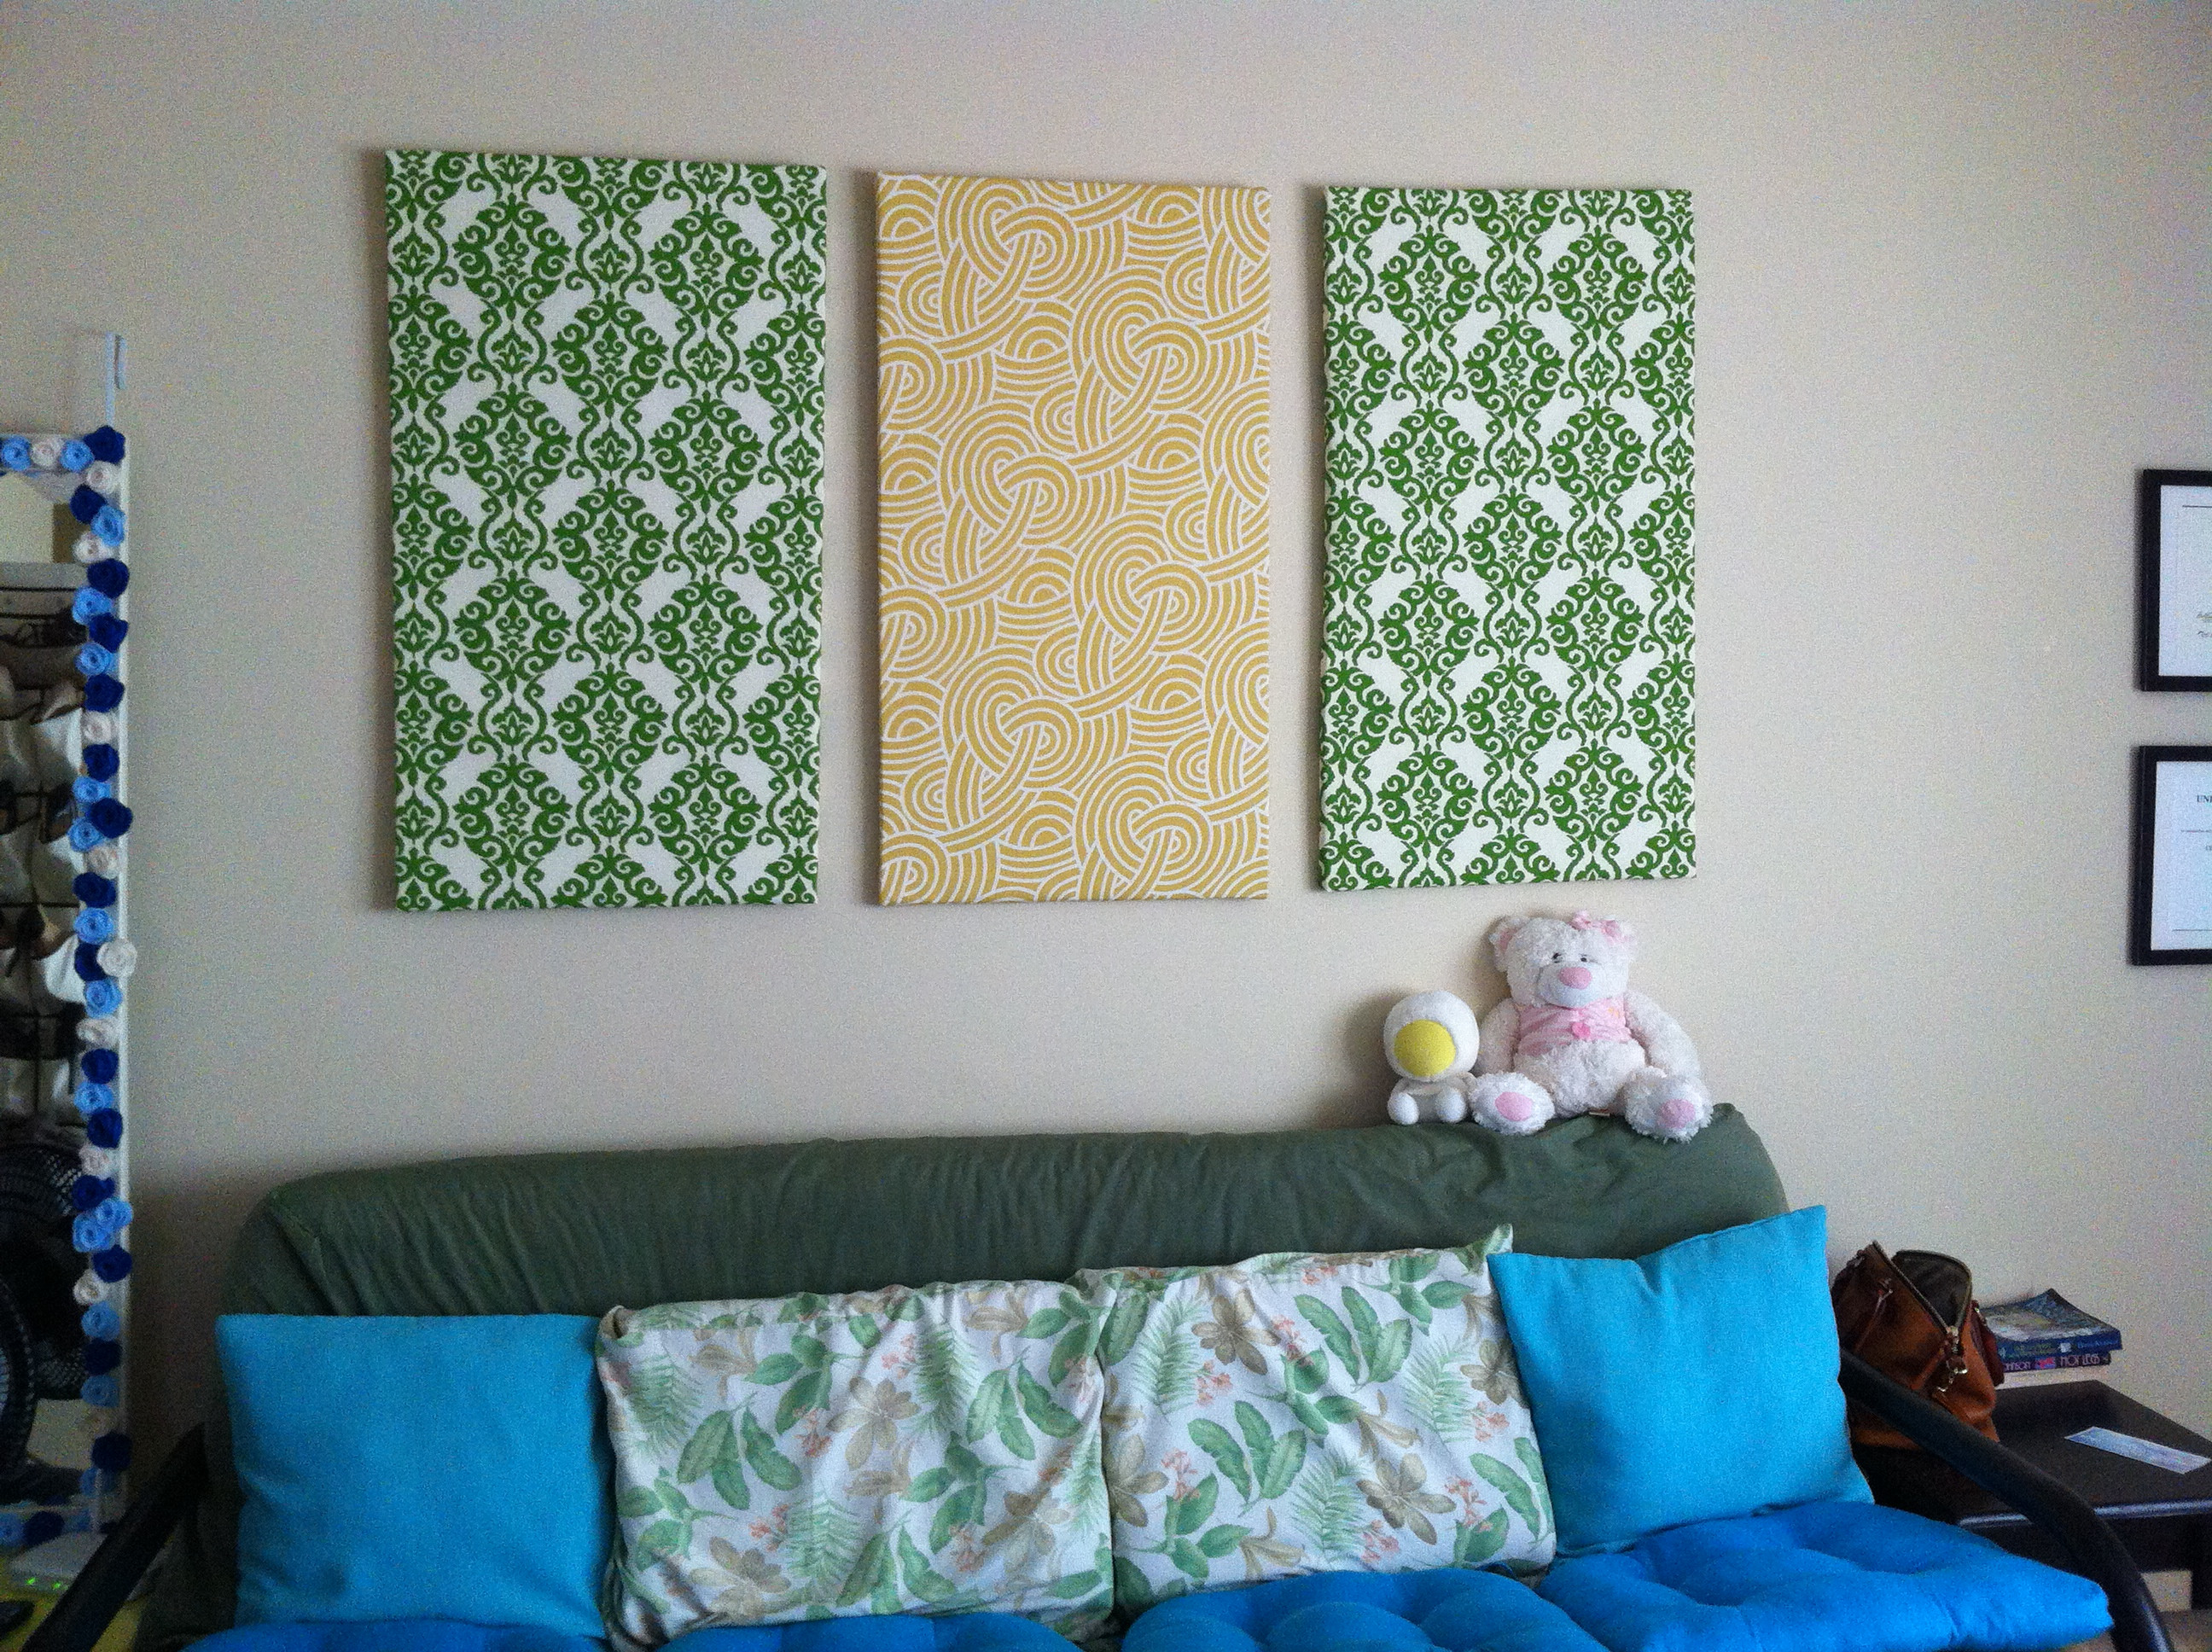 Best ideas about Fabric Wall Art . Save or Pin DIY Fabric Wall Art Now.